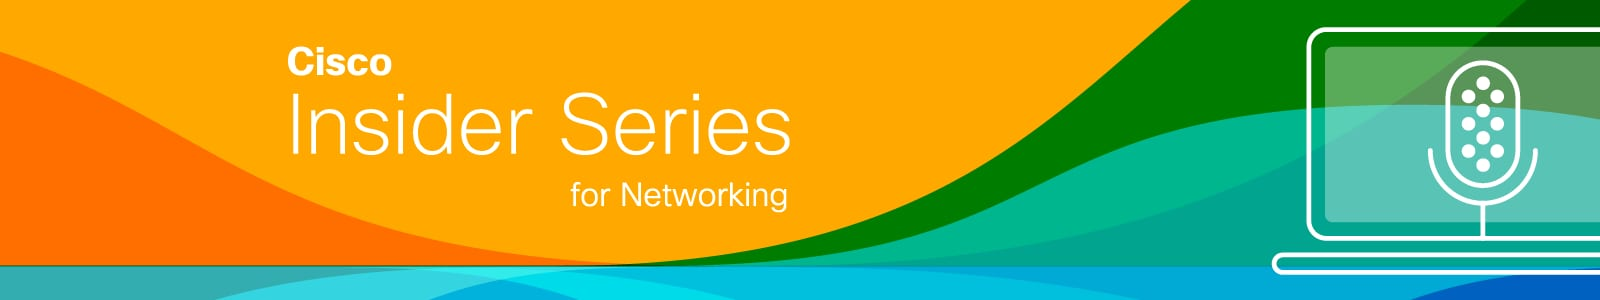 Insider Series for Networking